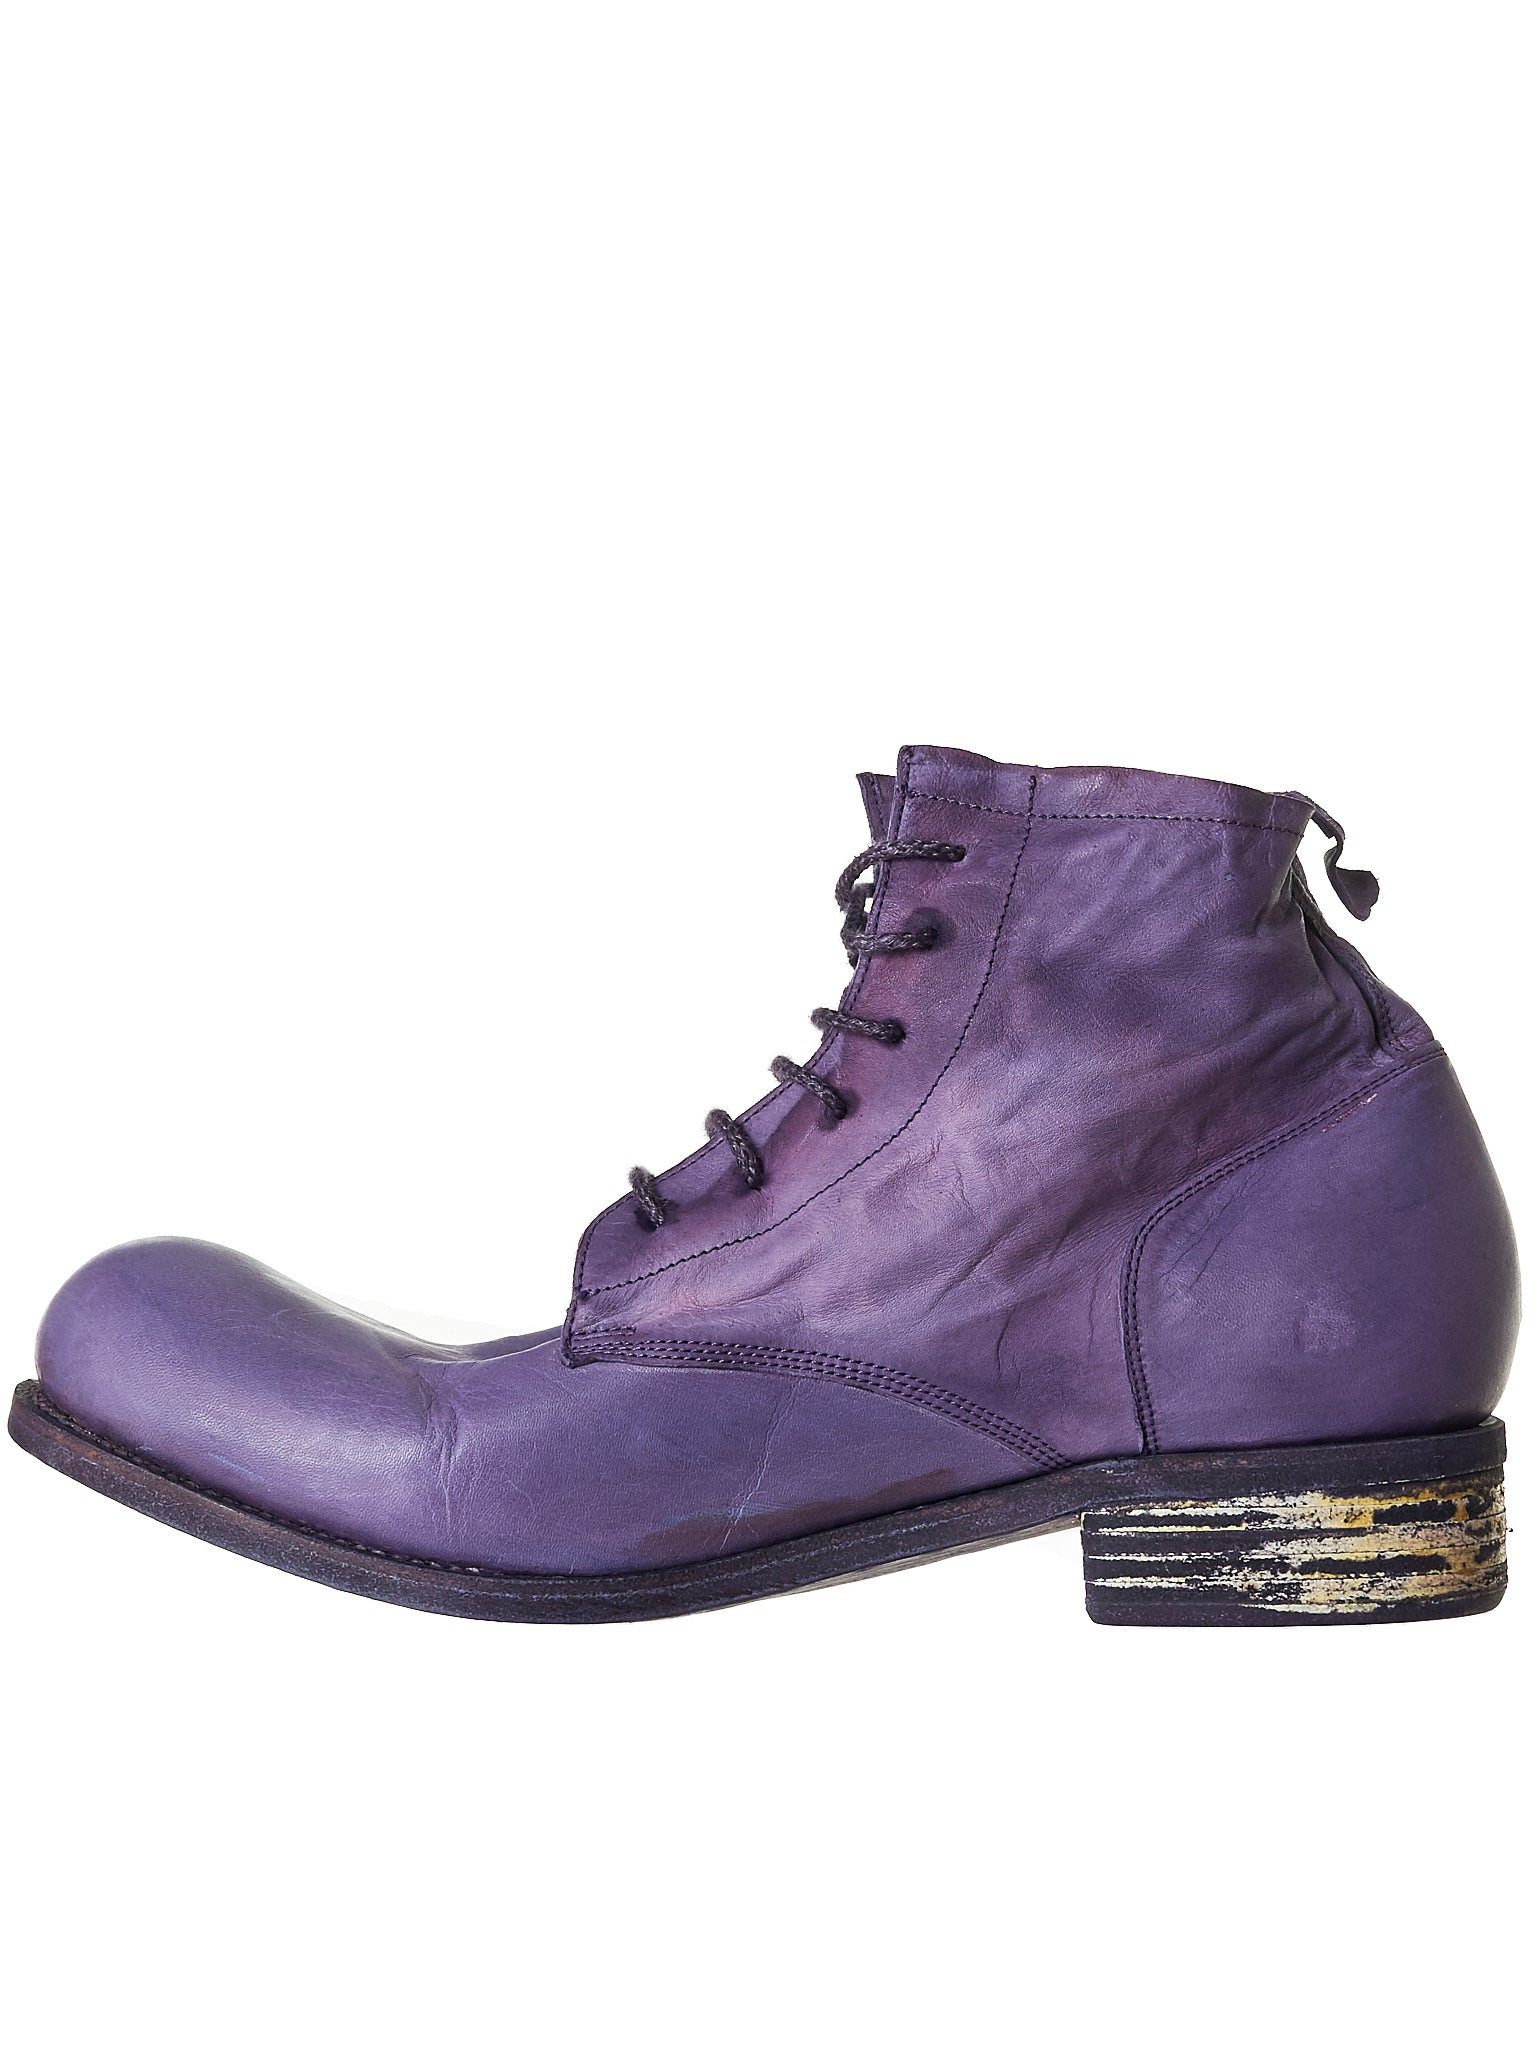 A Diciannoveventitre Kangaroo Leather Boot - Hlorenzo Back